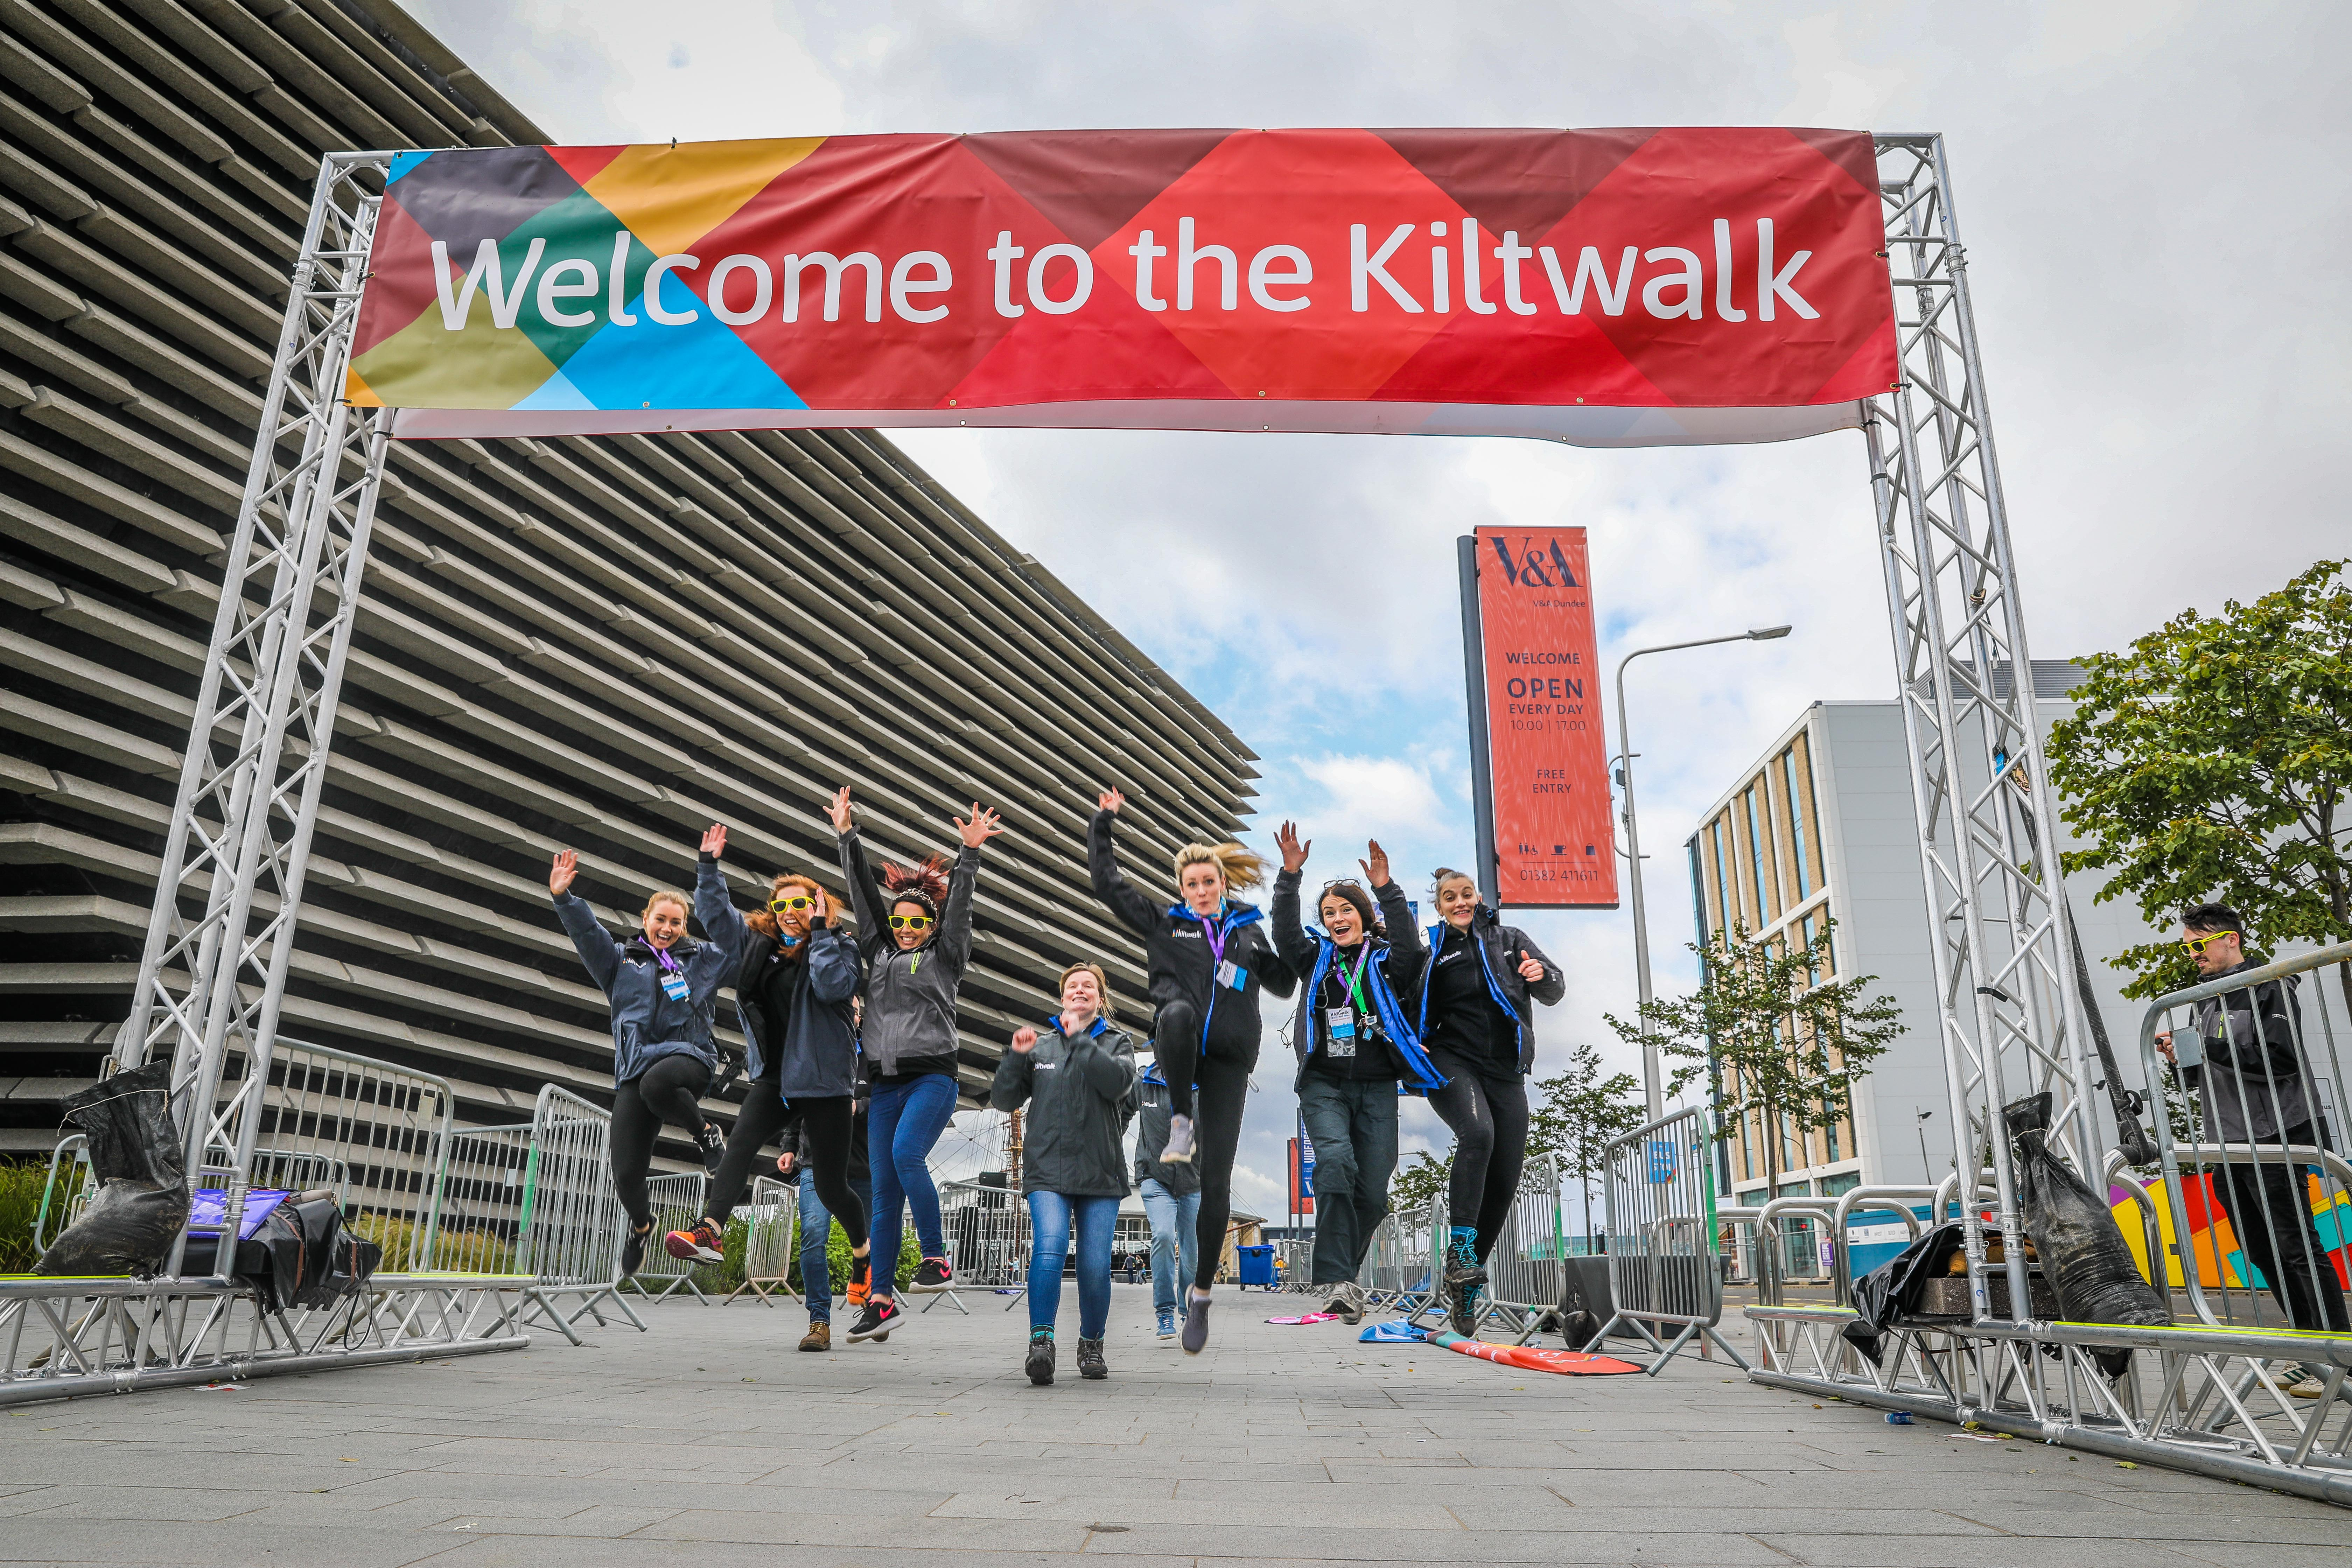 The 2019 Kiltwalk.